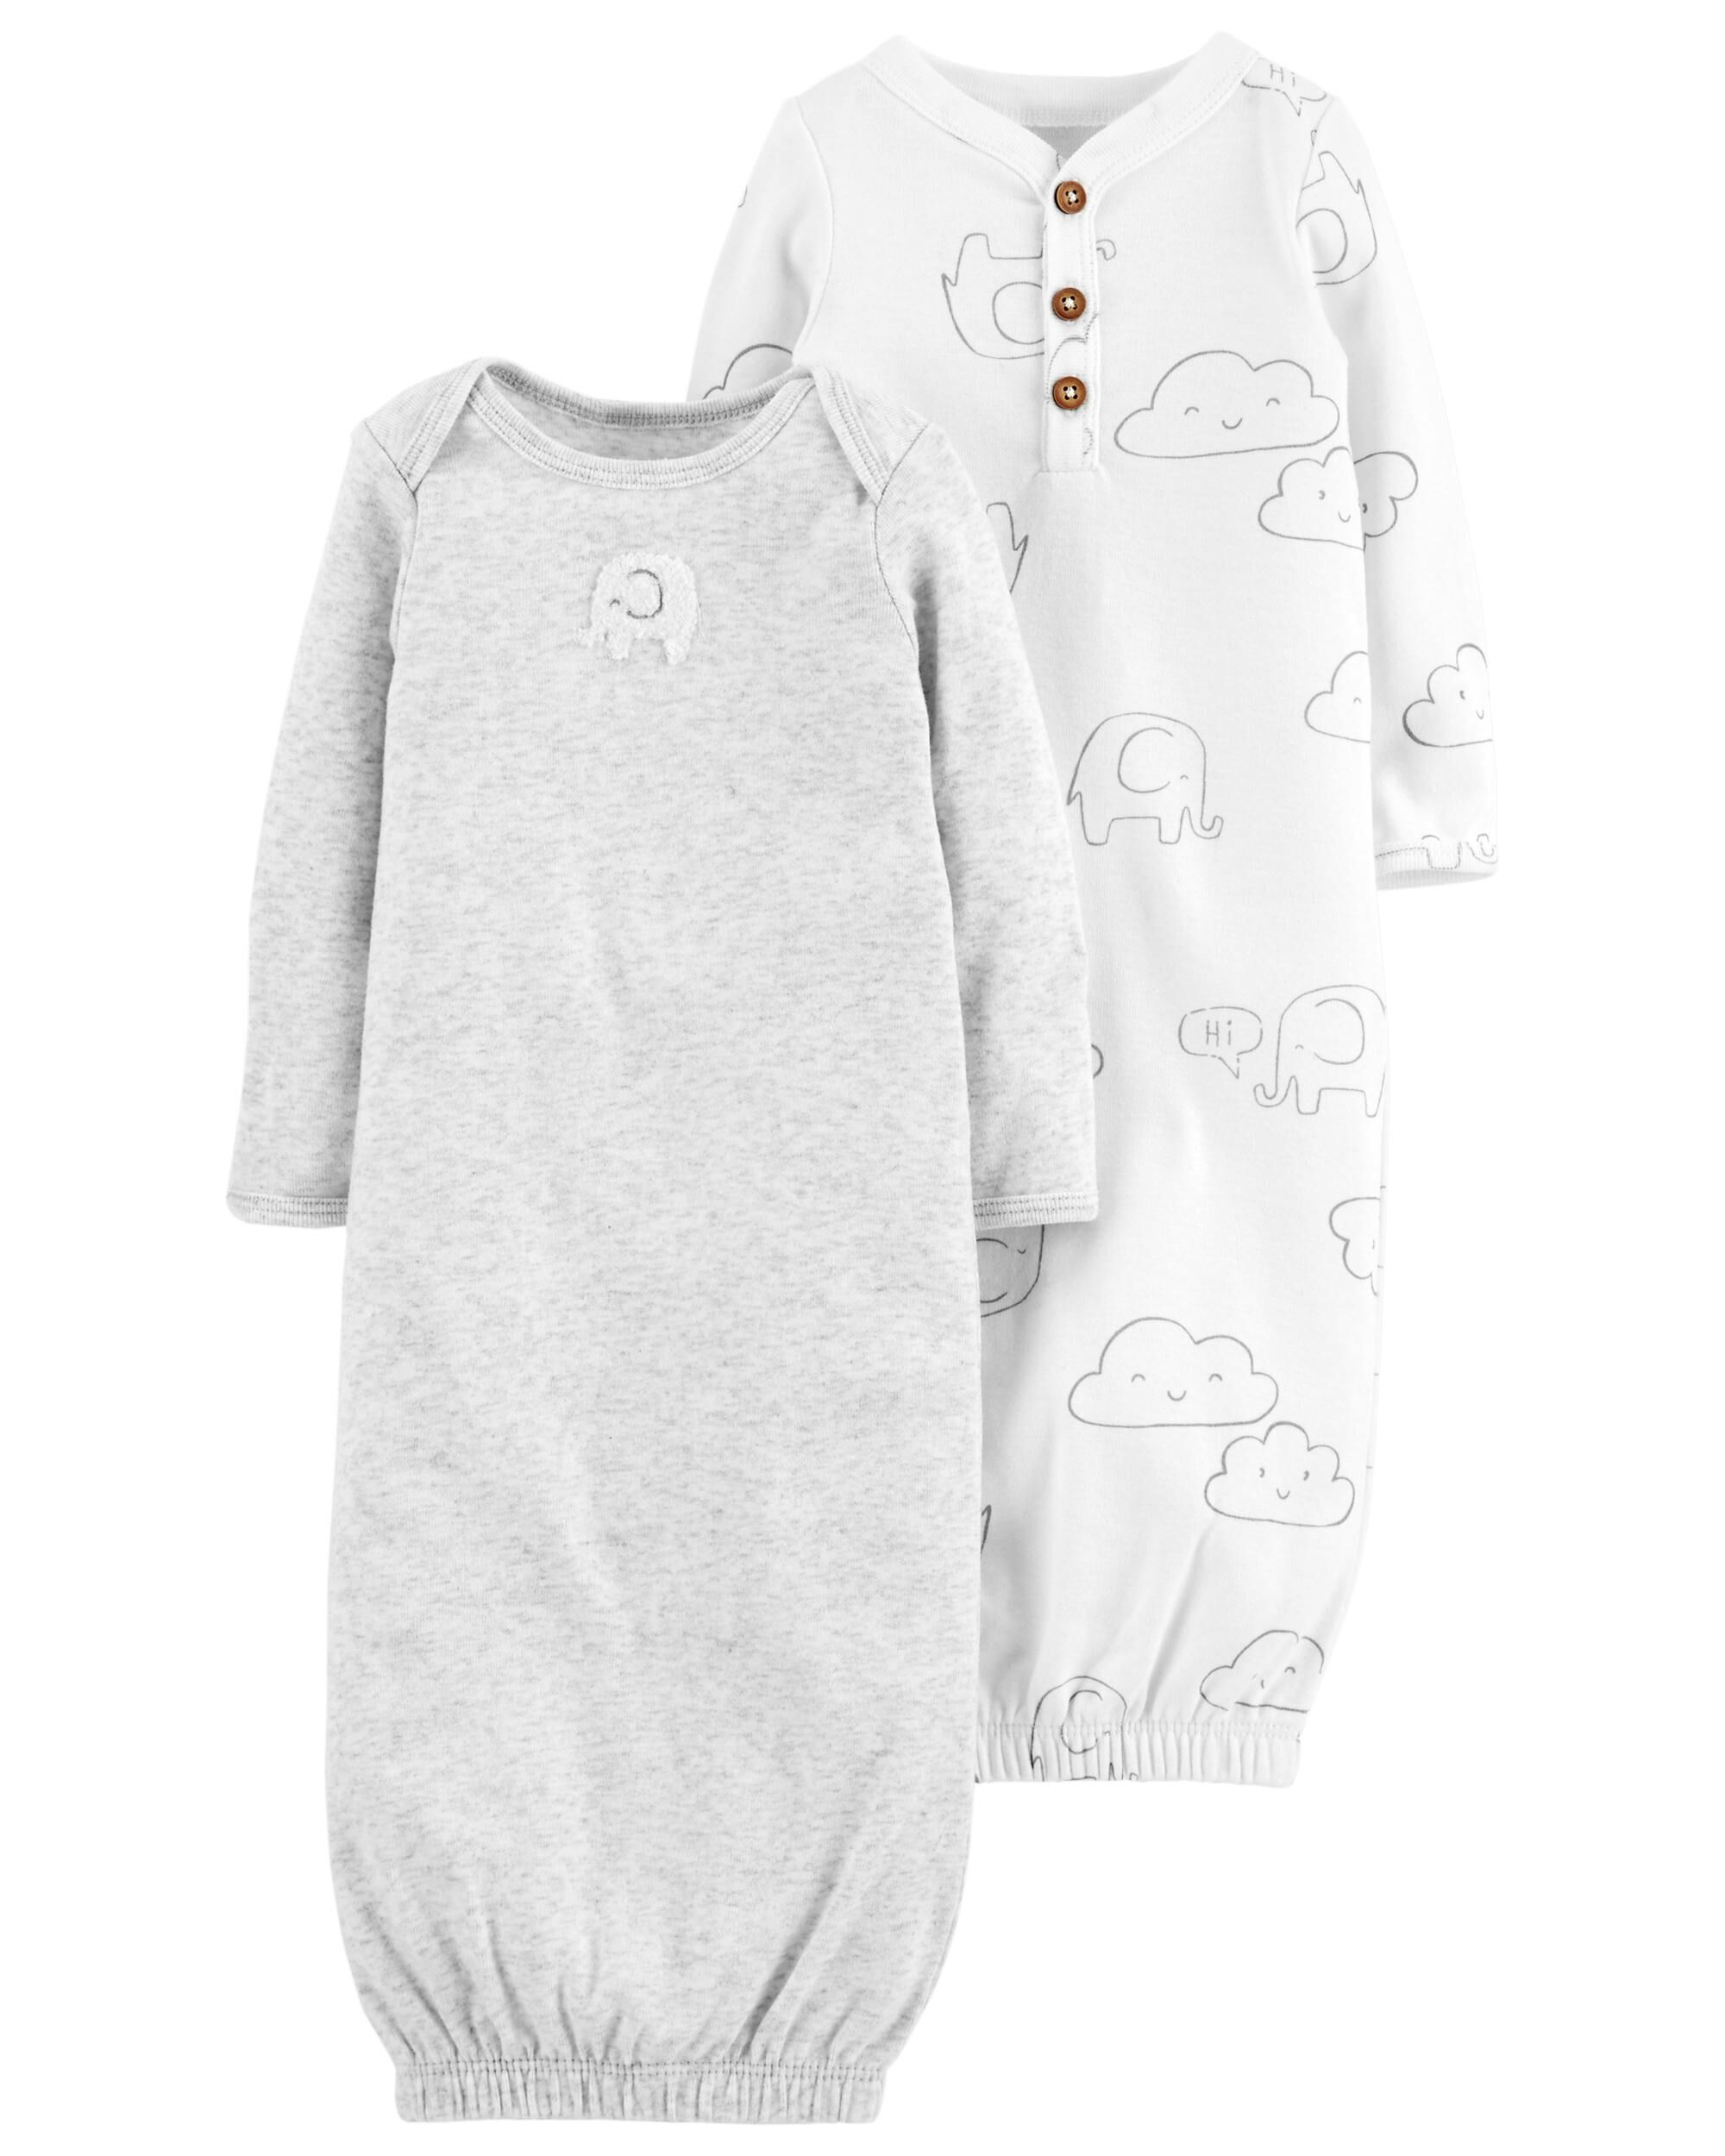 291169de18 ... 2-Pack Babysoft Sleeper Gowns ...